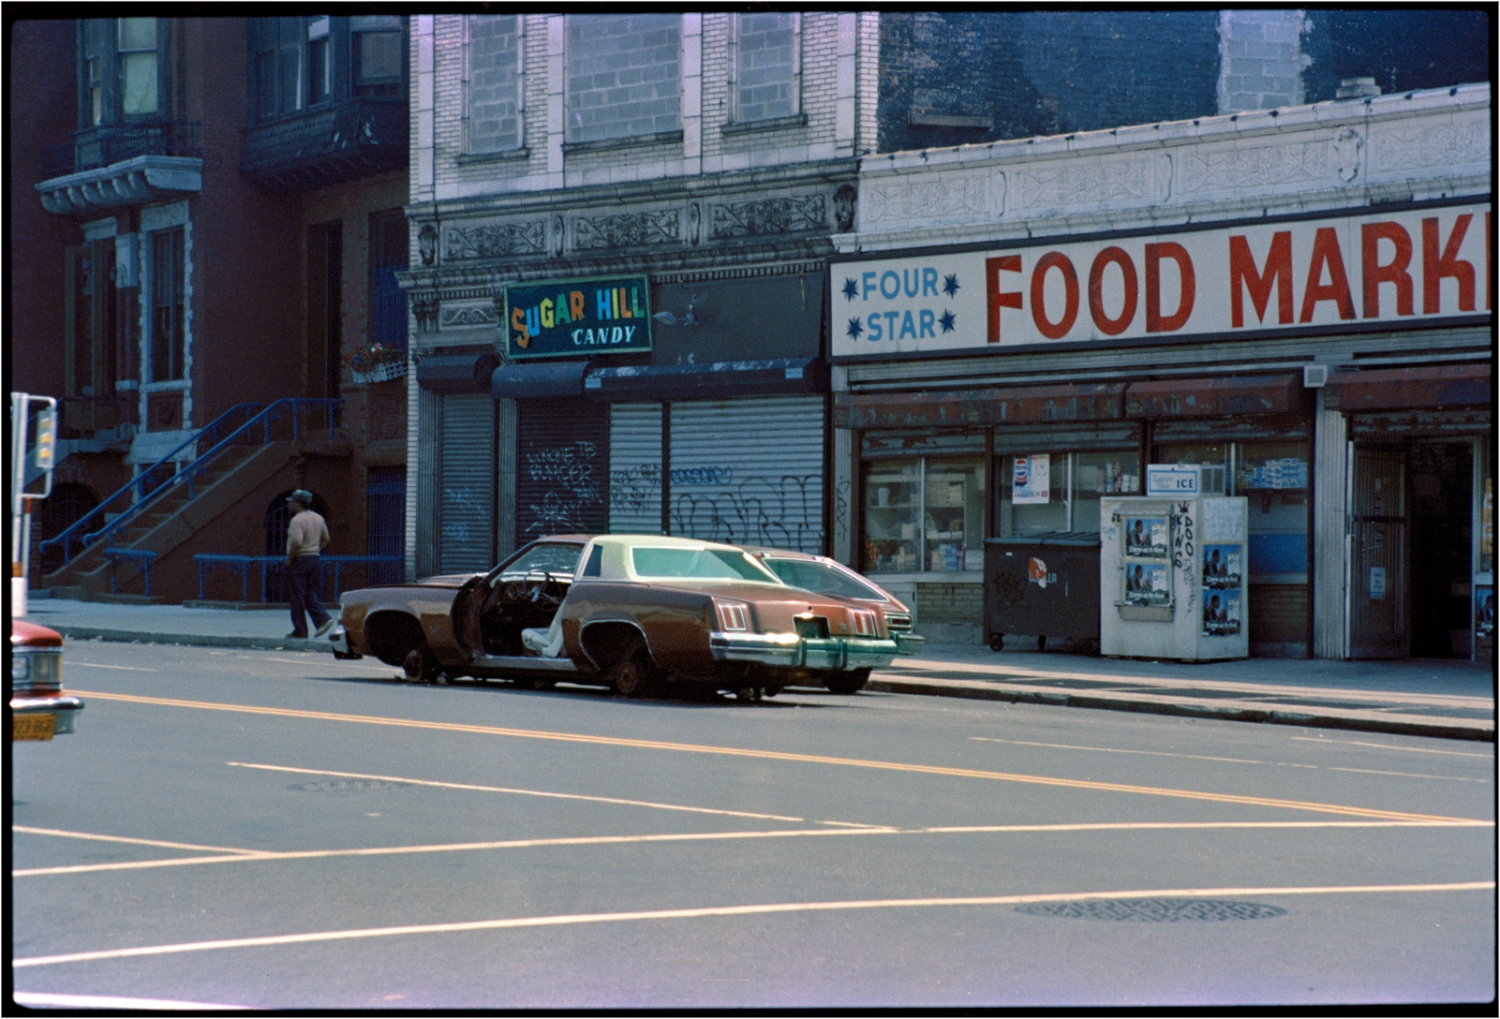 Harlem-Sugar-Hill-Candy-Car-1985 copy